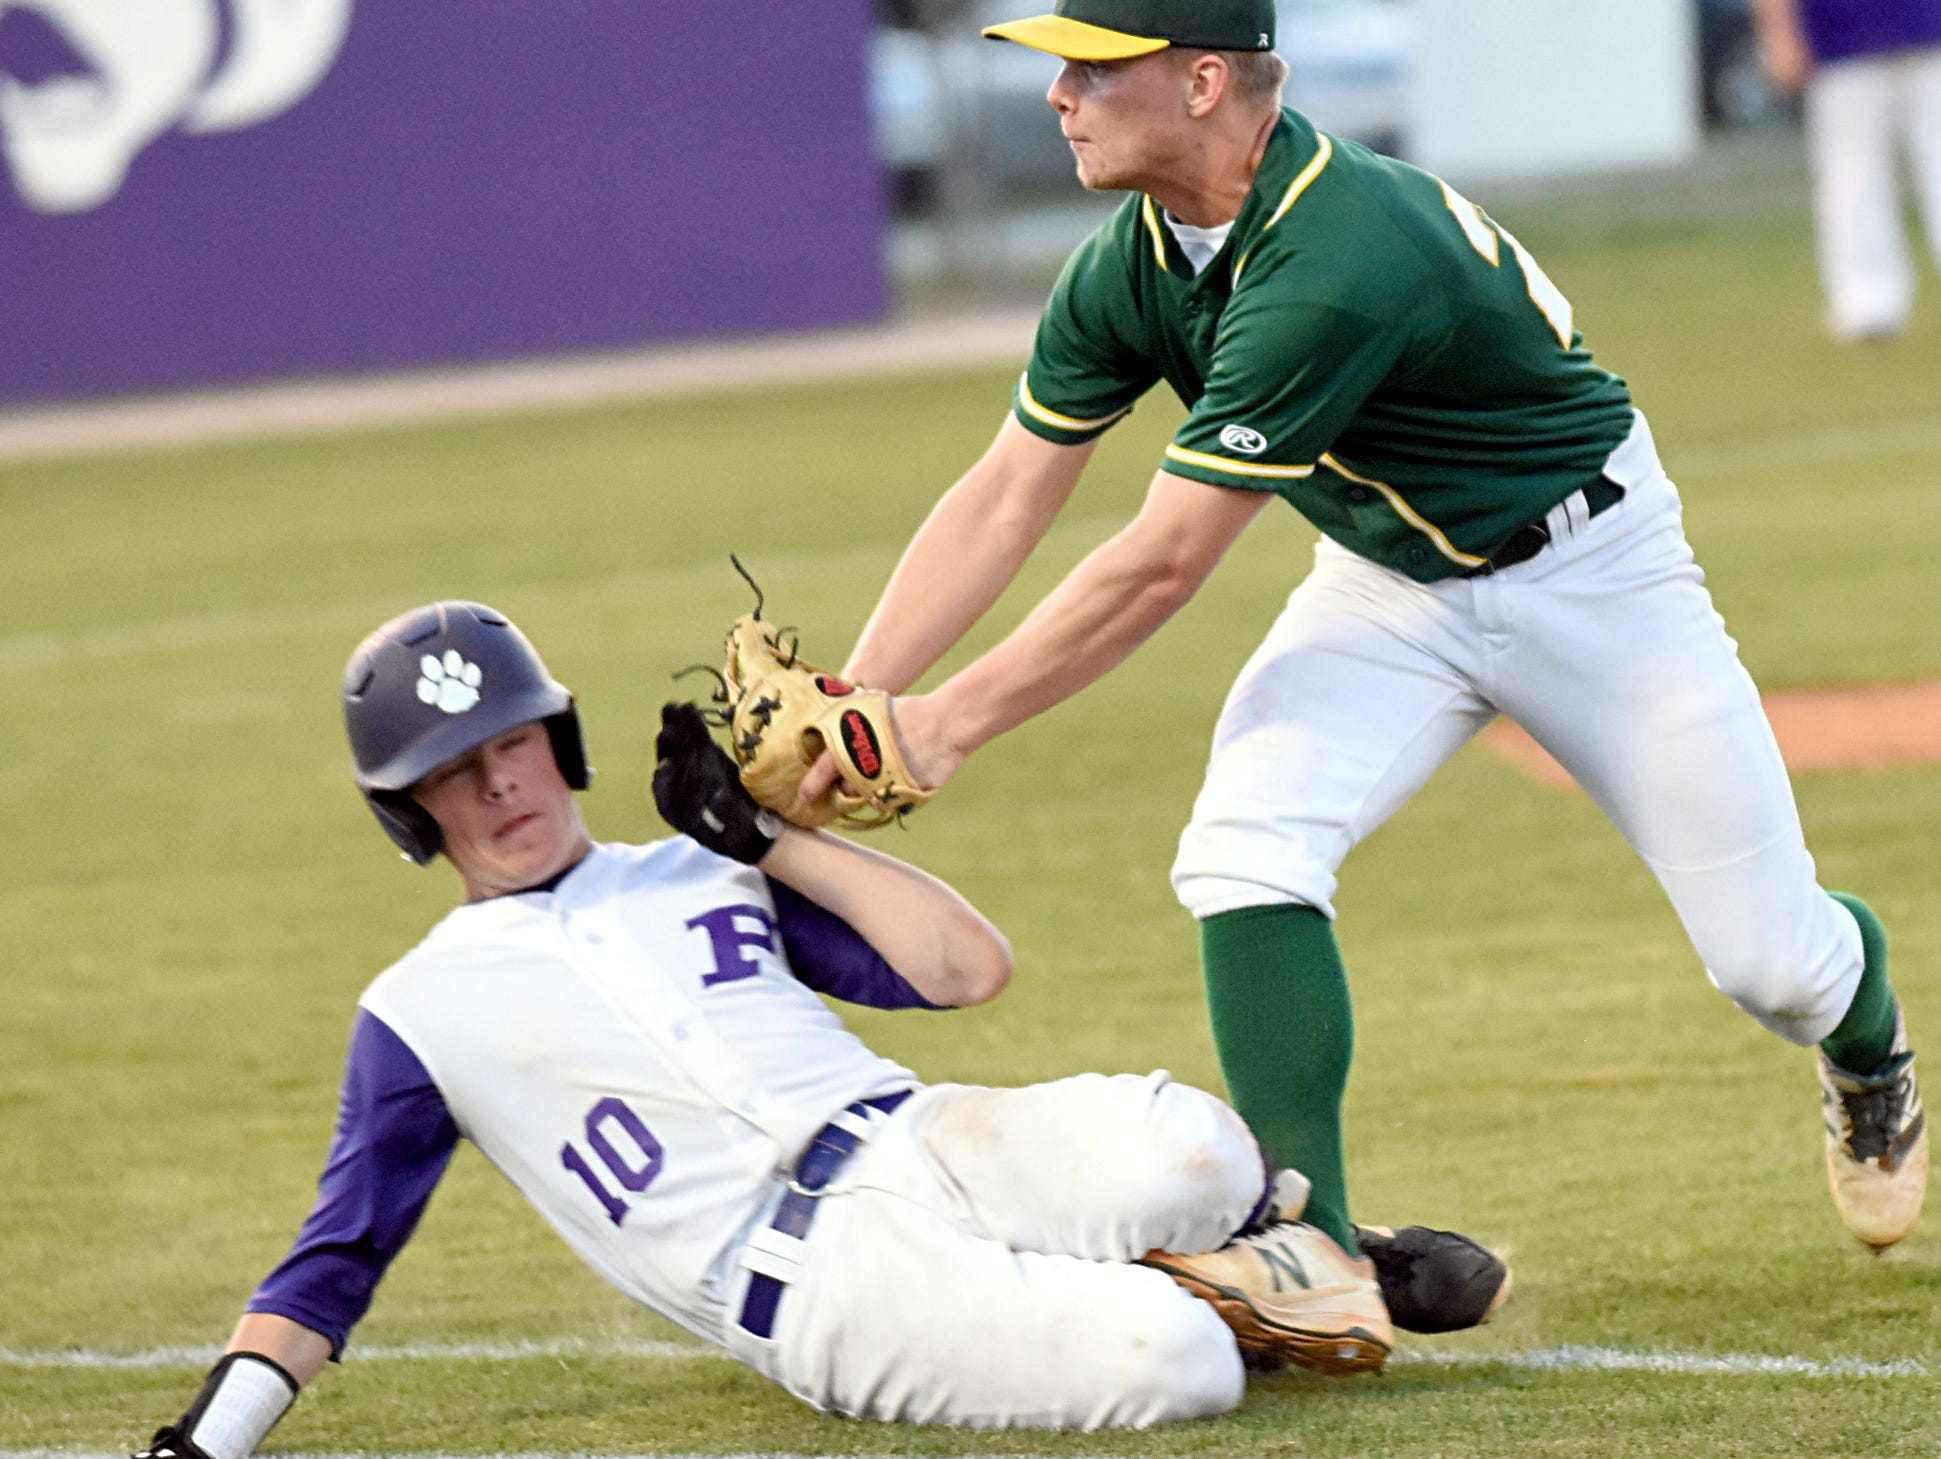 Gallatin High senior starting pitcher James Rockwell tags out Portland sophomore Logan Wilson during the first inning of Monday evening's 20-4 win for the Green Wave.